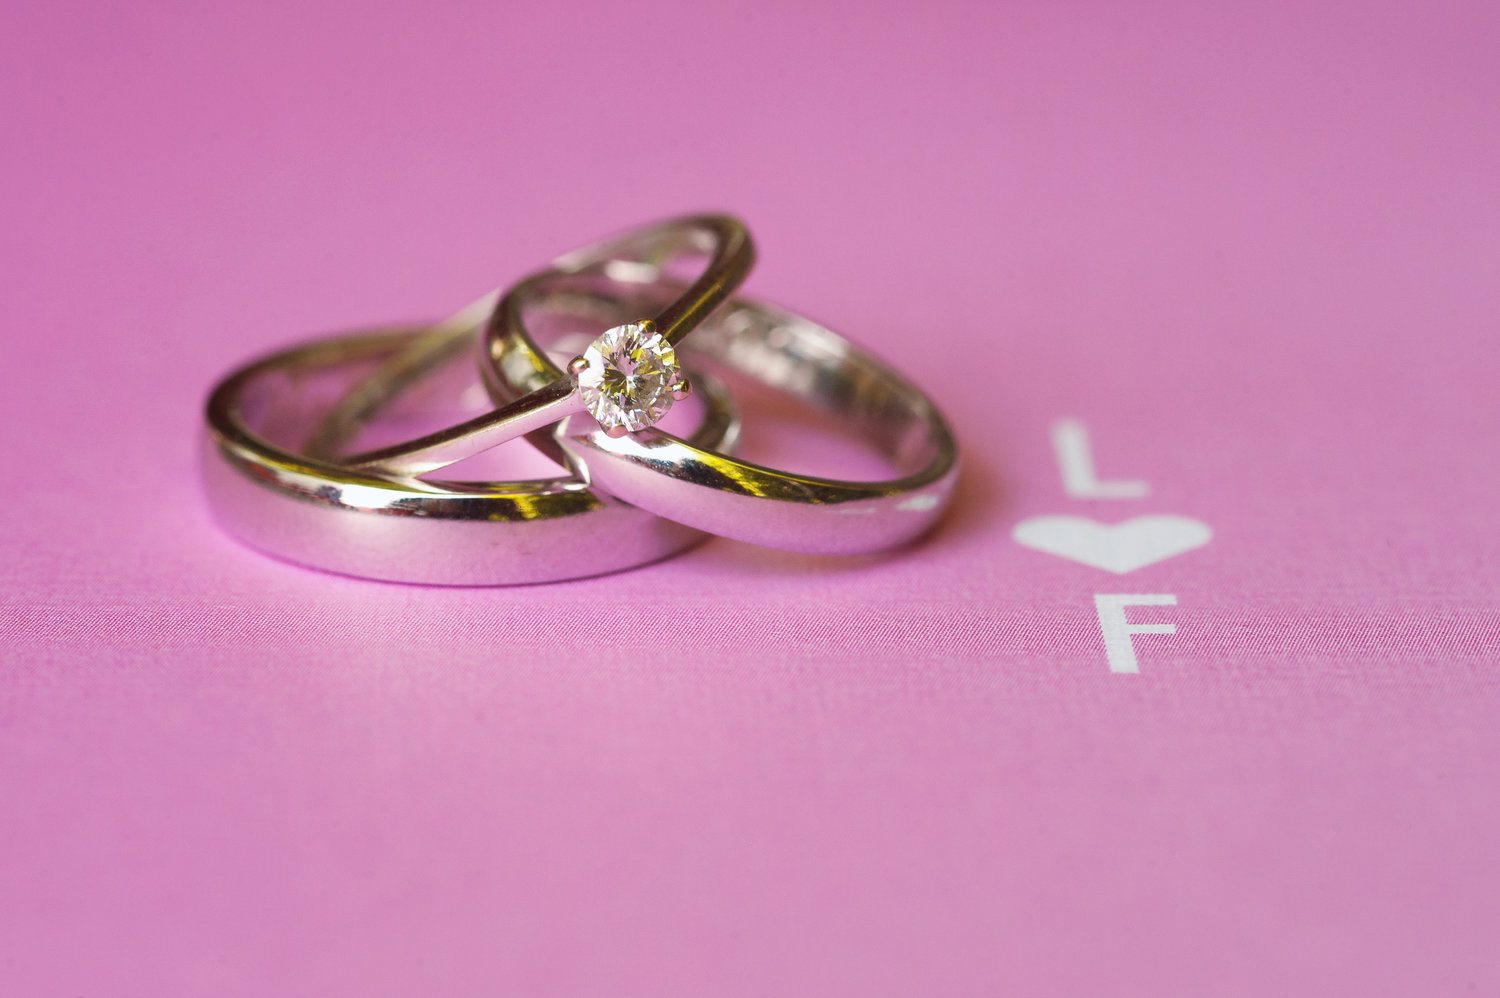 Rings engagement wedding photography Caterina Bugno_2.jpg